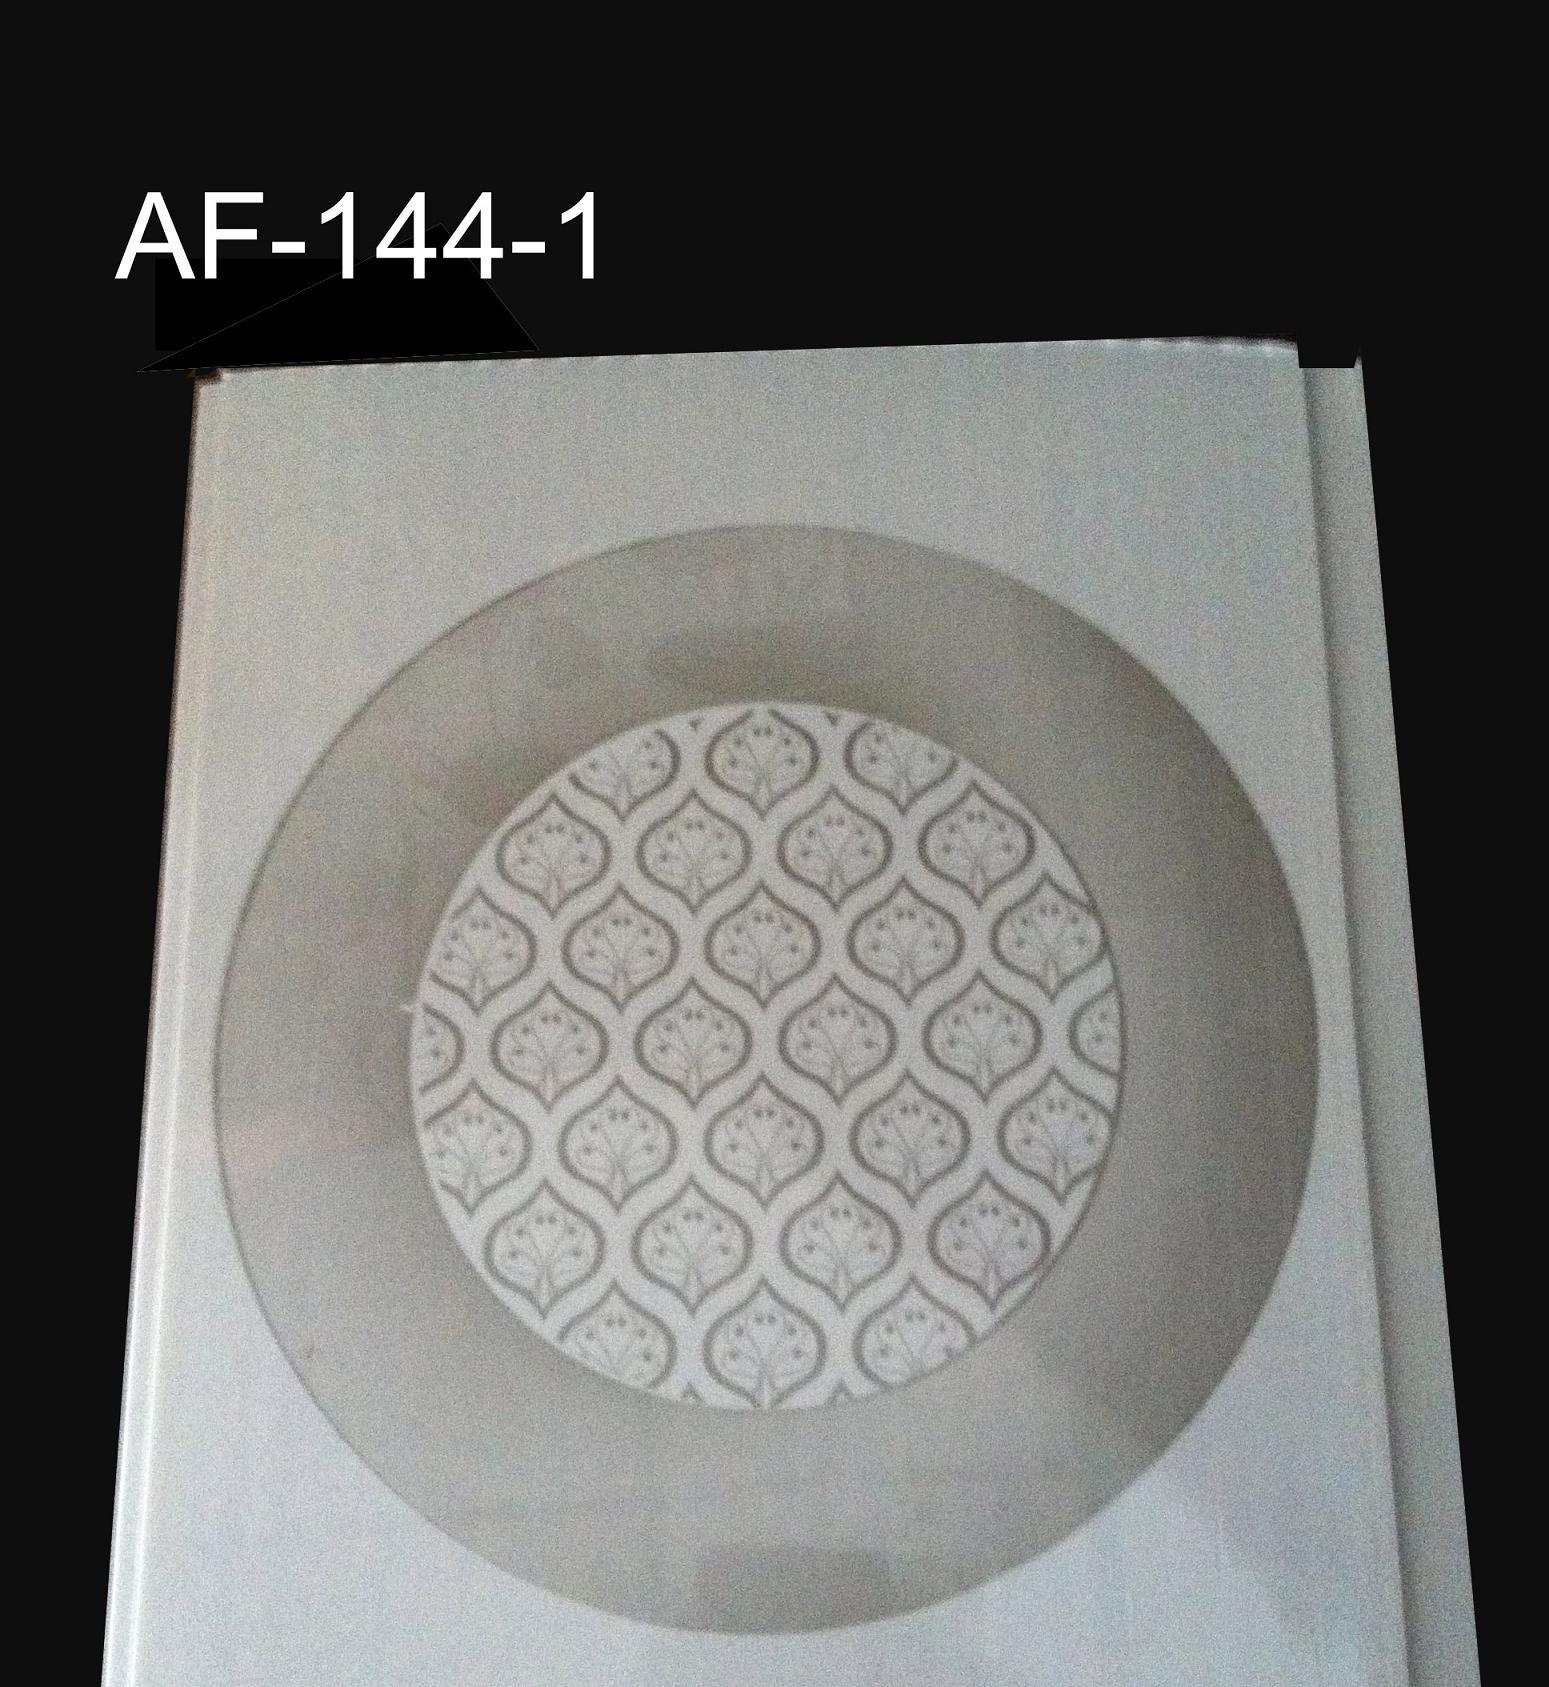 Faux Plafonds Pvc China Pvc Panel Faux Plafond Pvc Photos Pictures Made In China